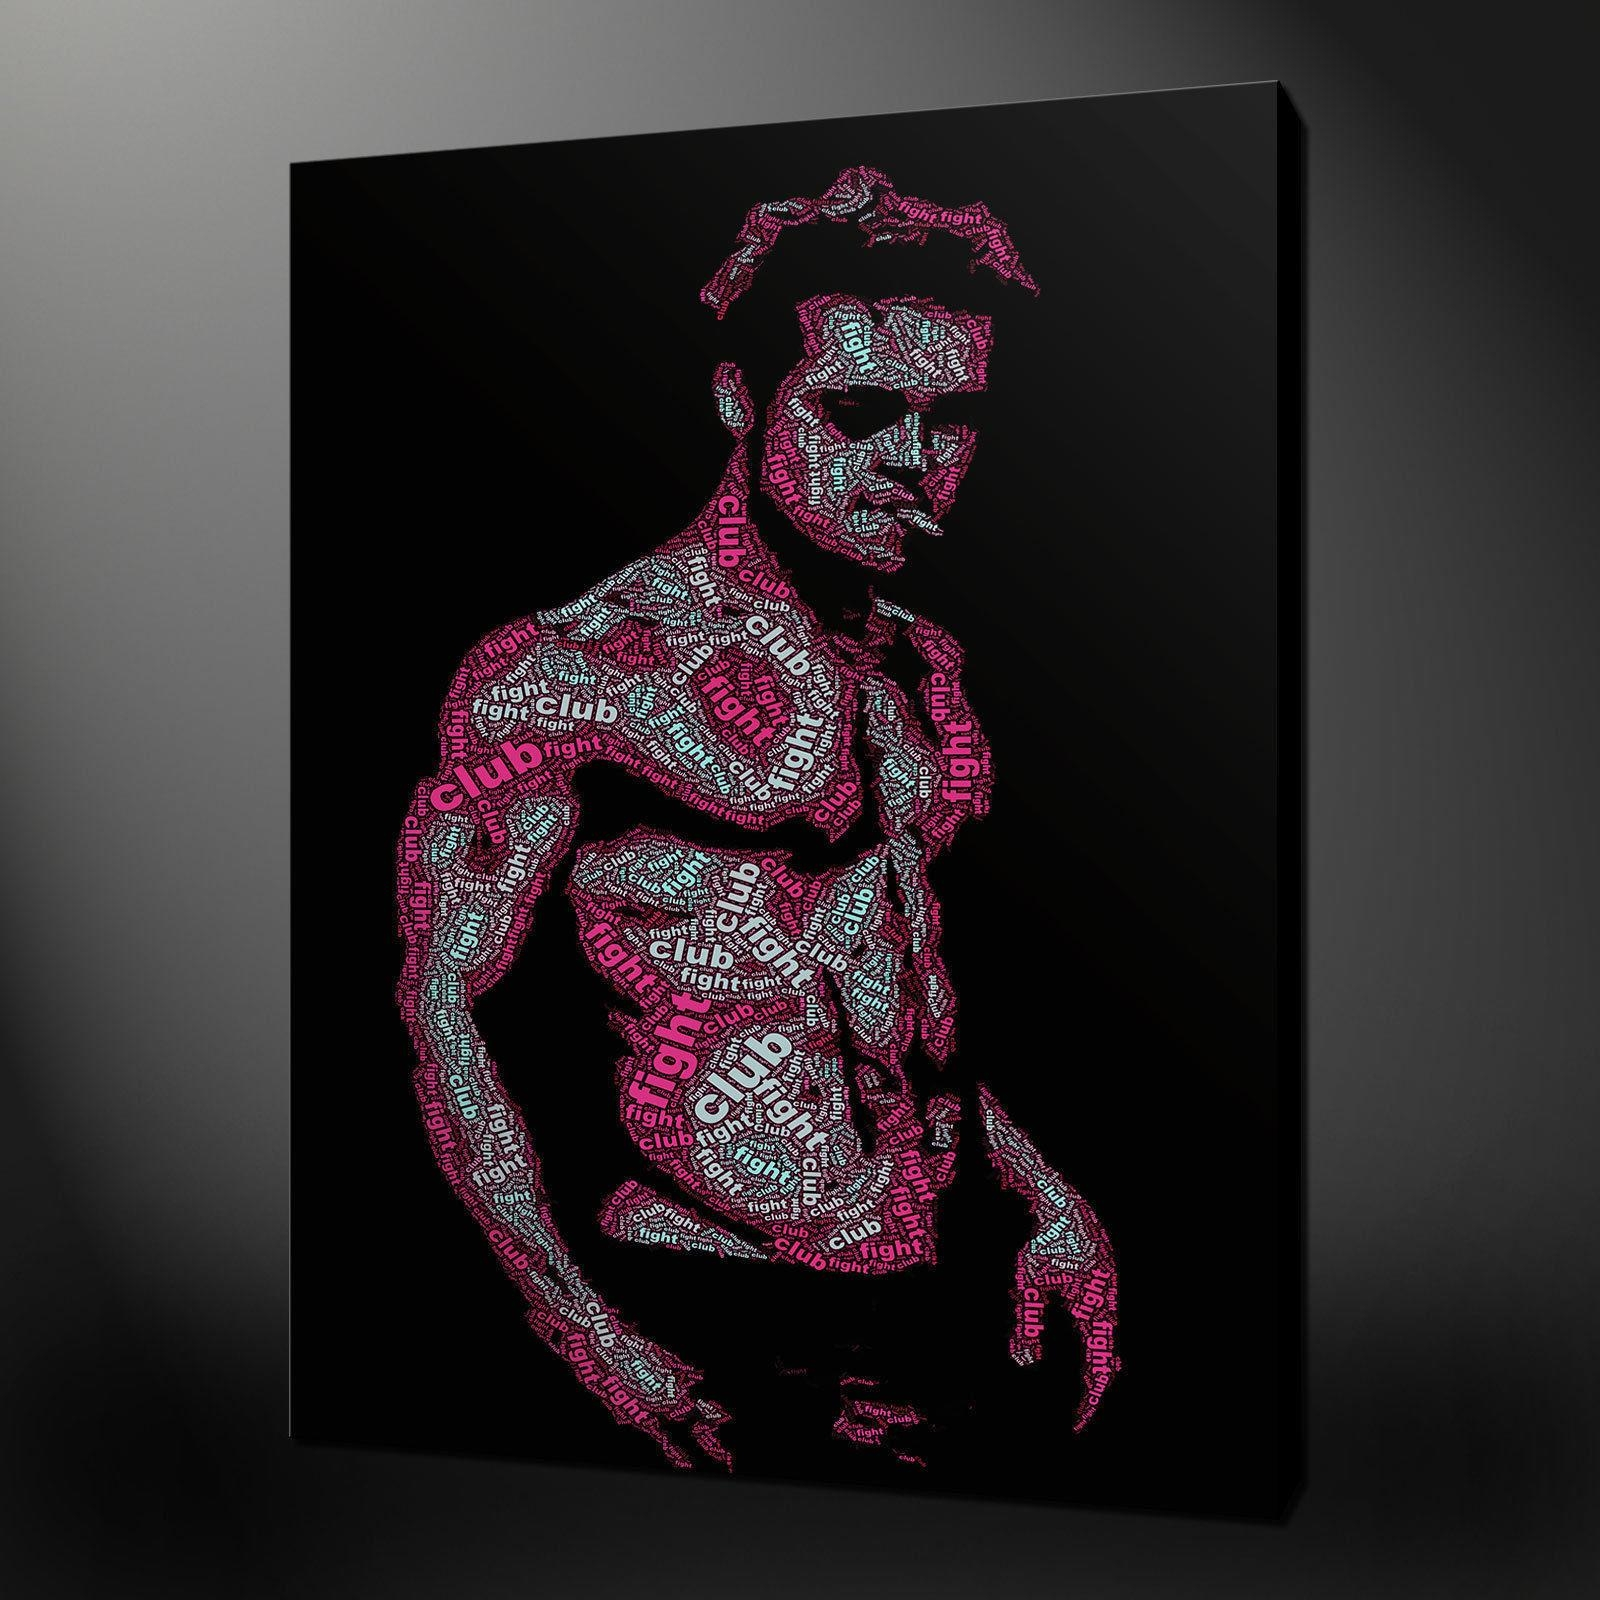 Brad Pitt Fight Club Typography Art Picture Canvas Print 20 X 16 With Regard To Typography Canvas Wall Art (Image 10 of 20)